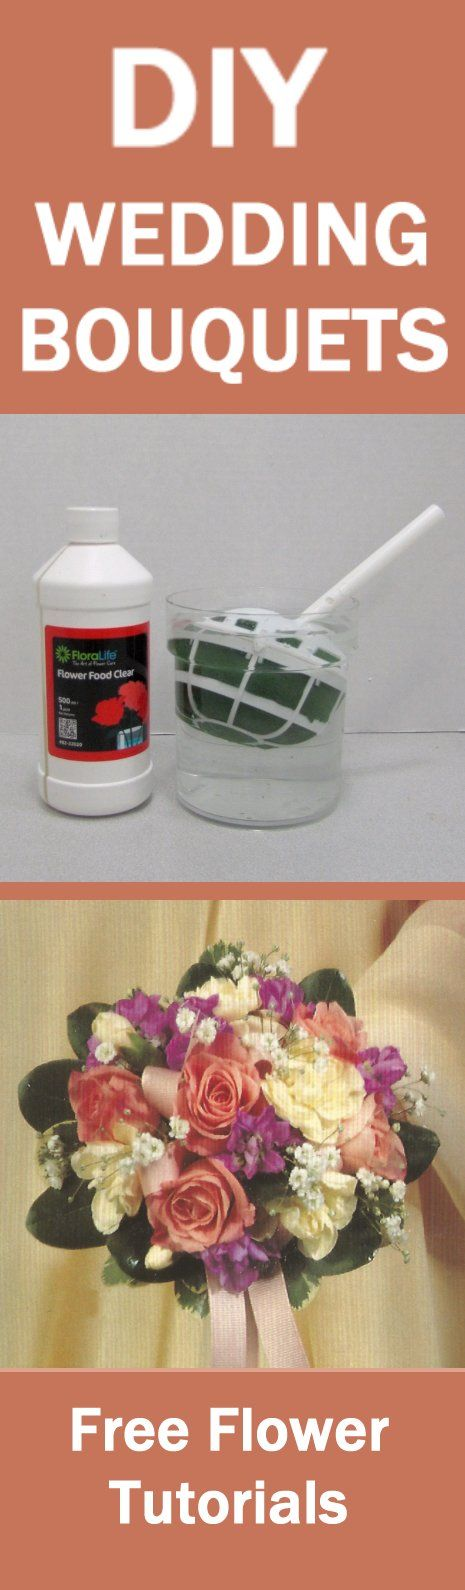 Mixed Round Rose Bridal Bouquet - Easy DIY Wedding Flower Tutorials  Learn how to make bridal bouquets, fresh corsages, groom boutonnieres, table centerpieces and church decorations.  Buy fresh flowers and discount florist supplies.